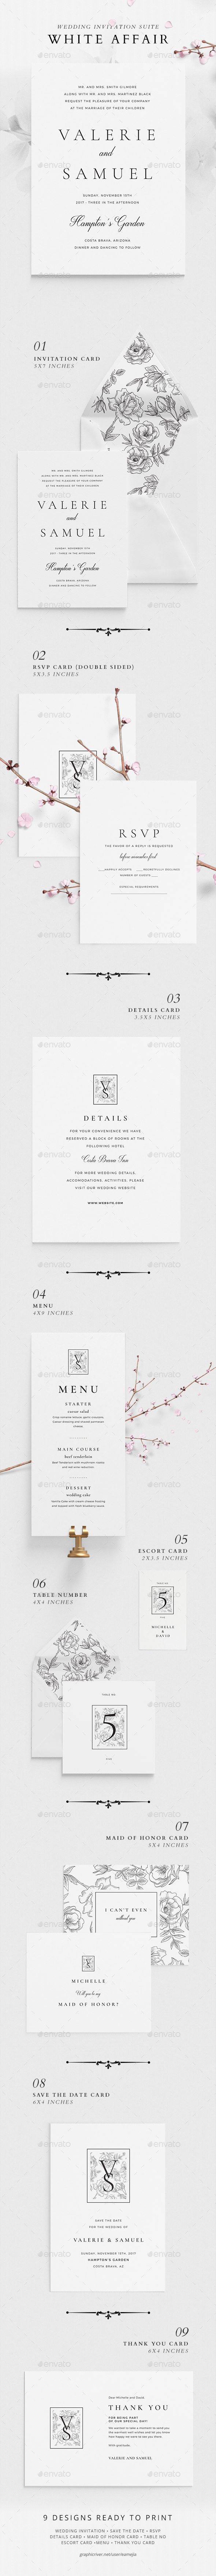 Wedding Invitation Suite - White Affair - Weddings Cards & Invites